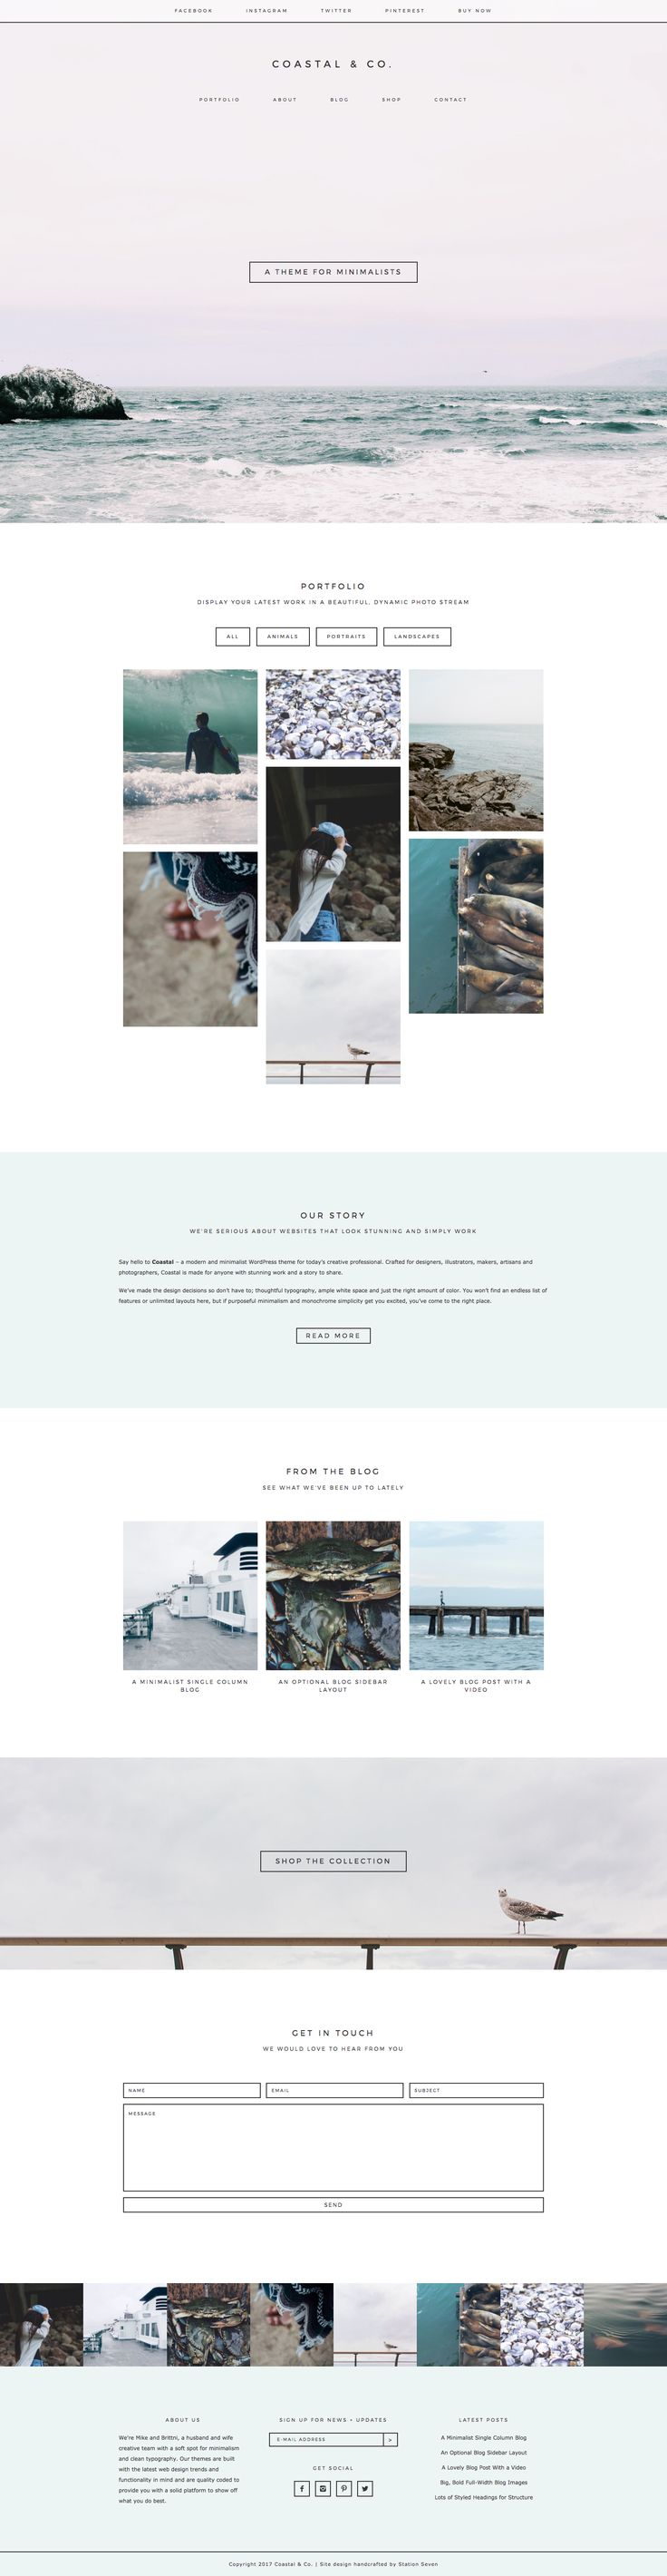 Say hello to Coastal 2.0 - a modern and minimalist WordPress theme for today's creative professional. Crafted for designers, makers, artisans and photographers, Coastal is made for anyone with stunning work and a story to share. We've added lots of great options, including a secondary sticky nav, portfolio category sorting, WooCommerce compatibility, a full-width Instagram footer and more.